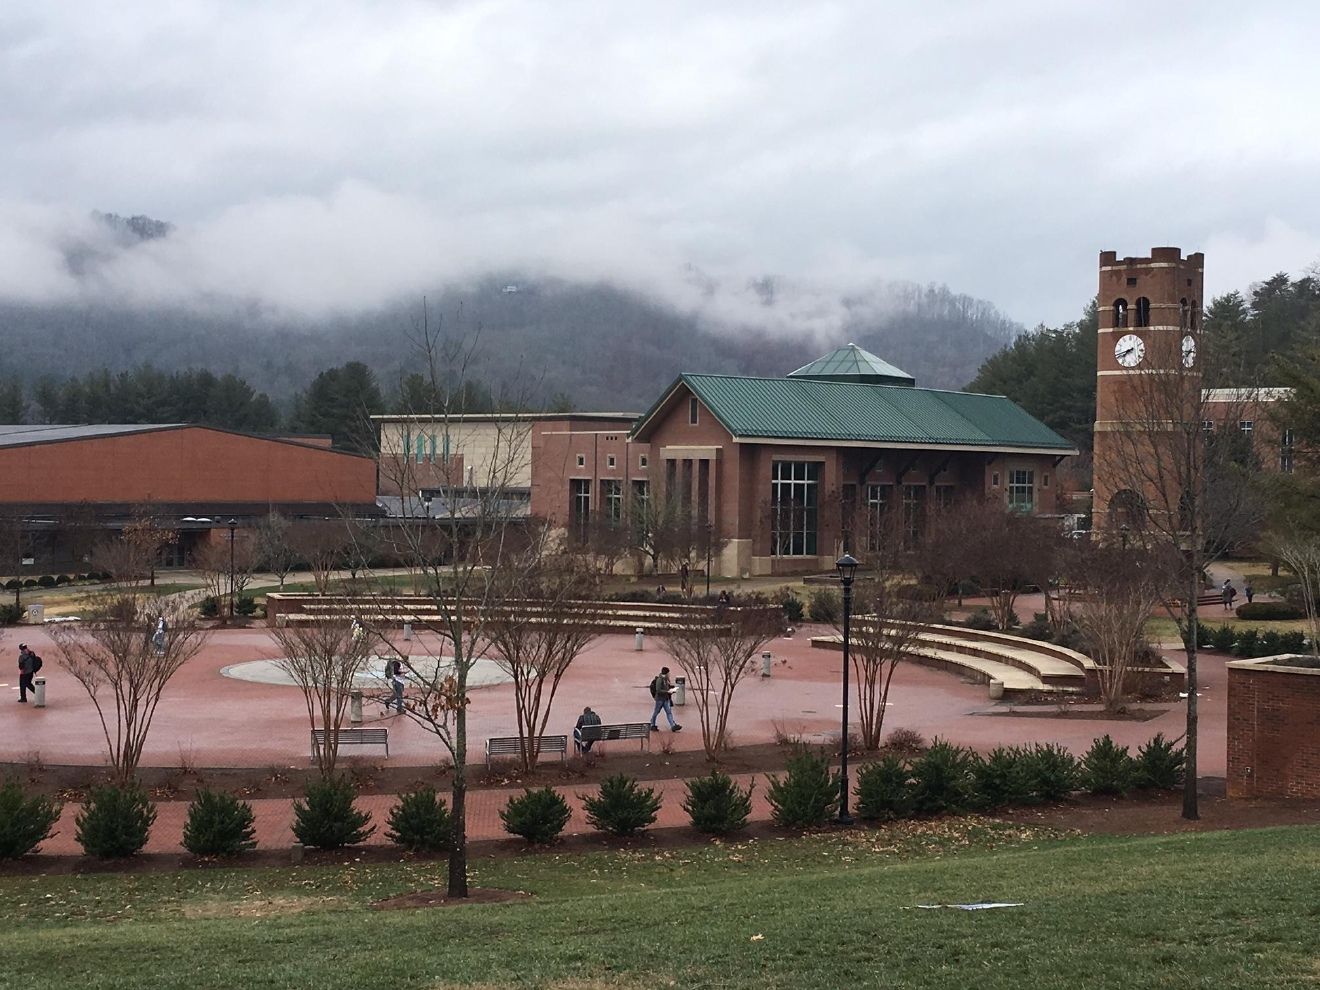 A political science professor in the mountains expects the new session of the North Carolina General Assembly, which began Wednesday, to be divisive.  Chris Cooper at Western Carolina University said Republicans hold a super majority and can override Governor Roy Cooper's vetoes. (Photo credit: WLOS staff)